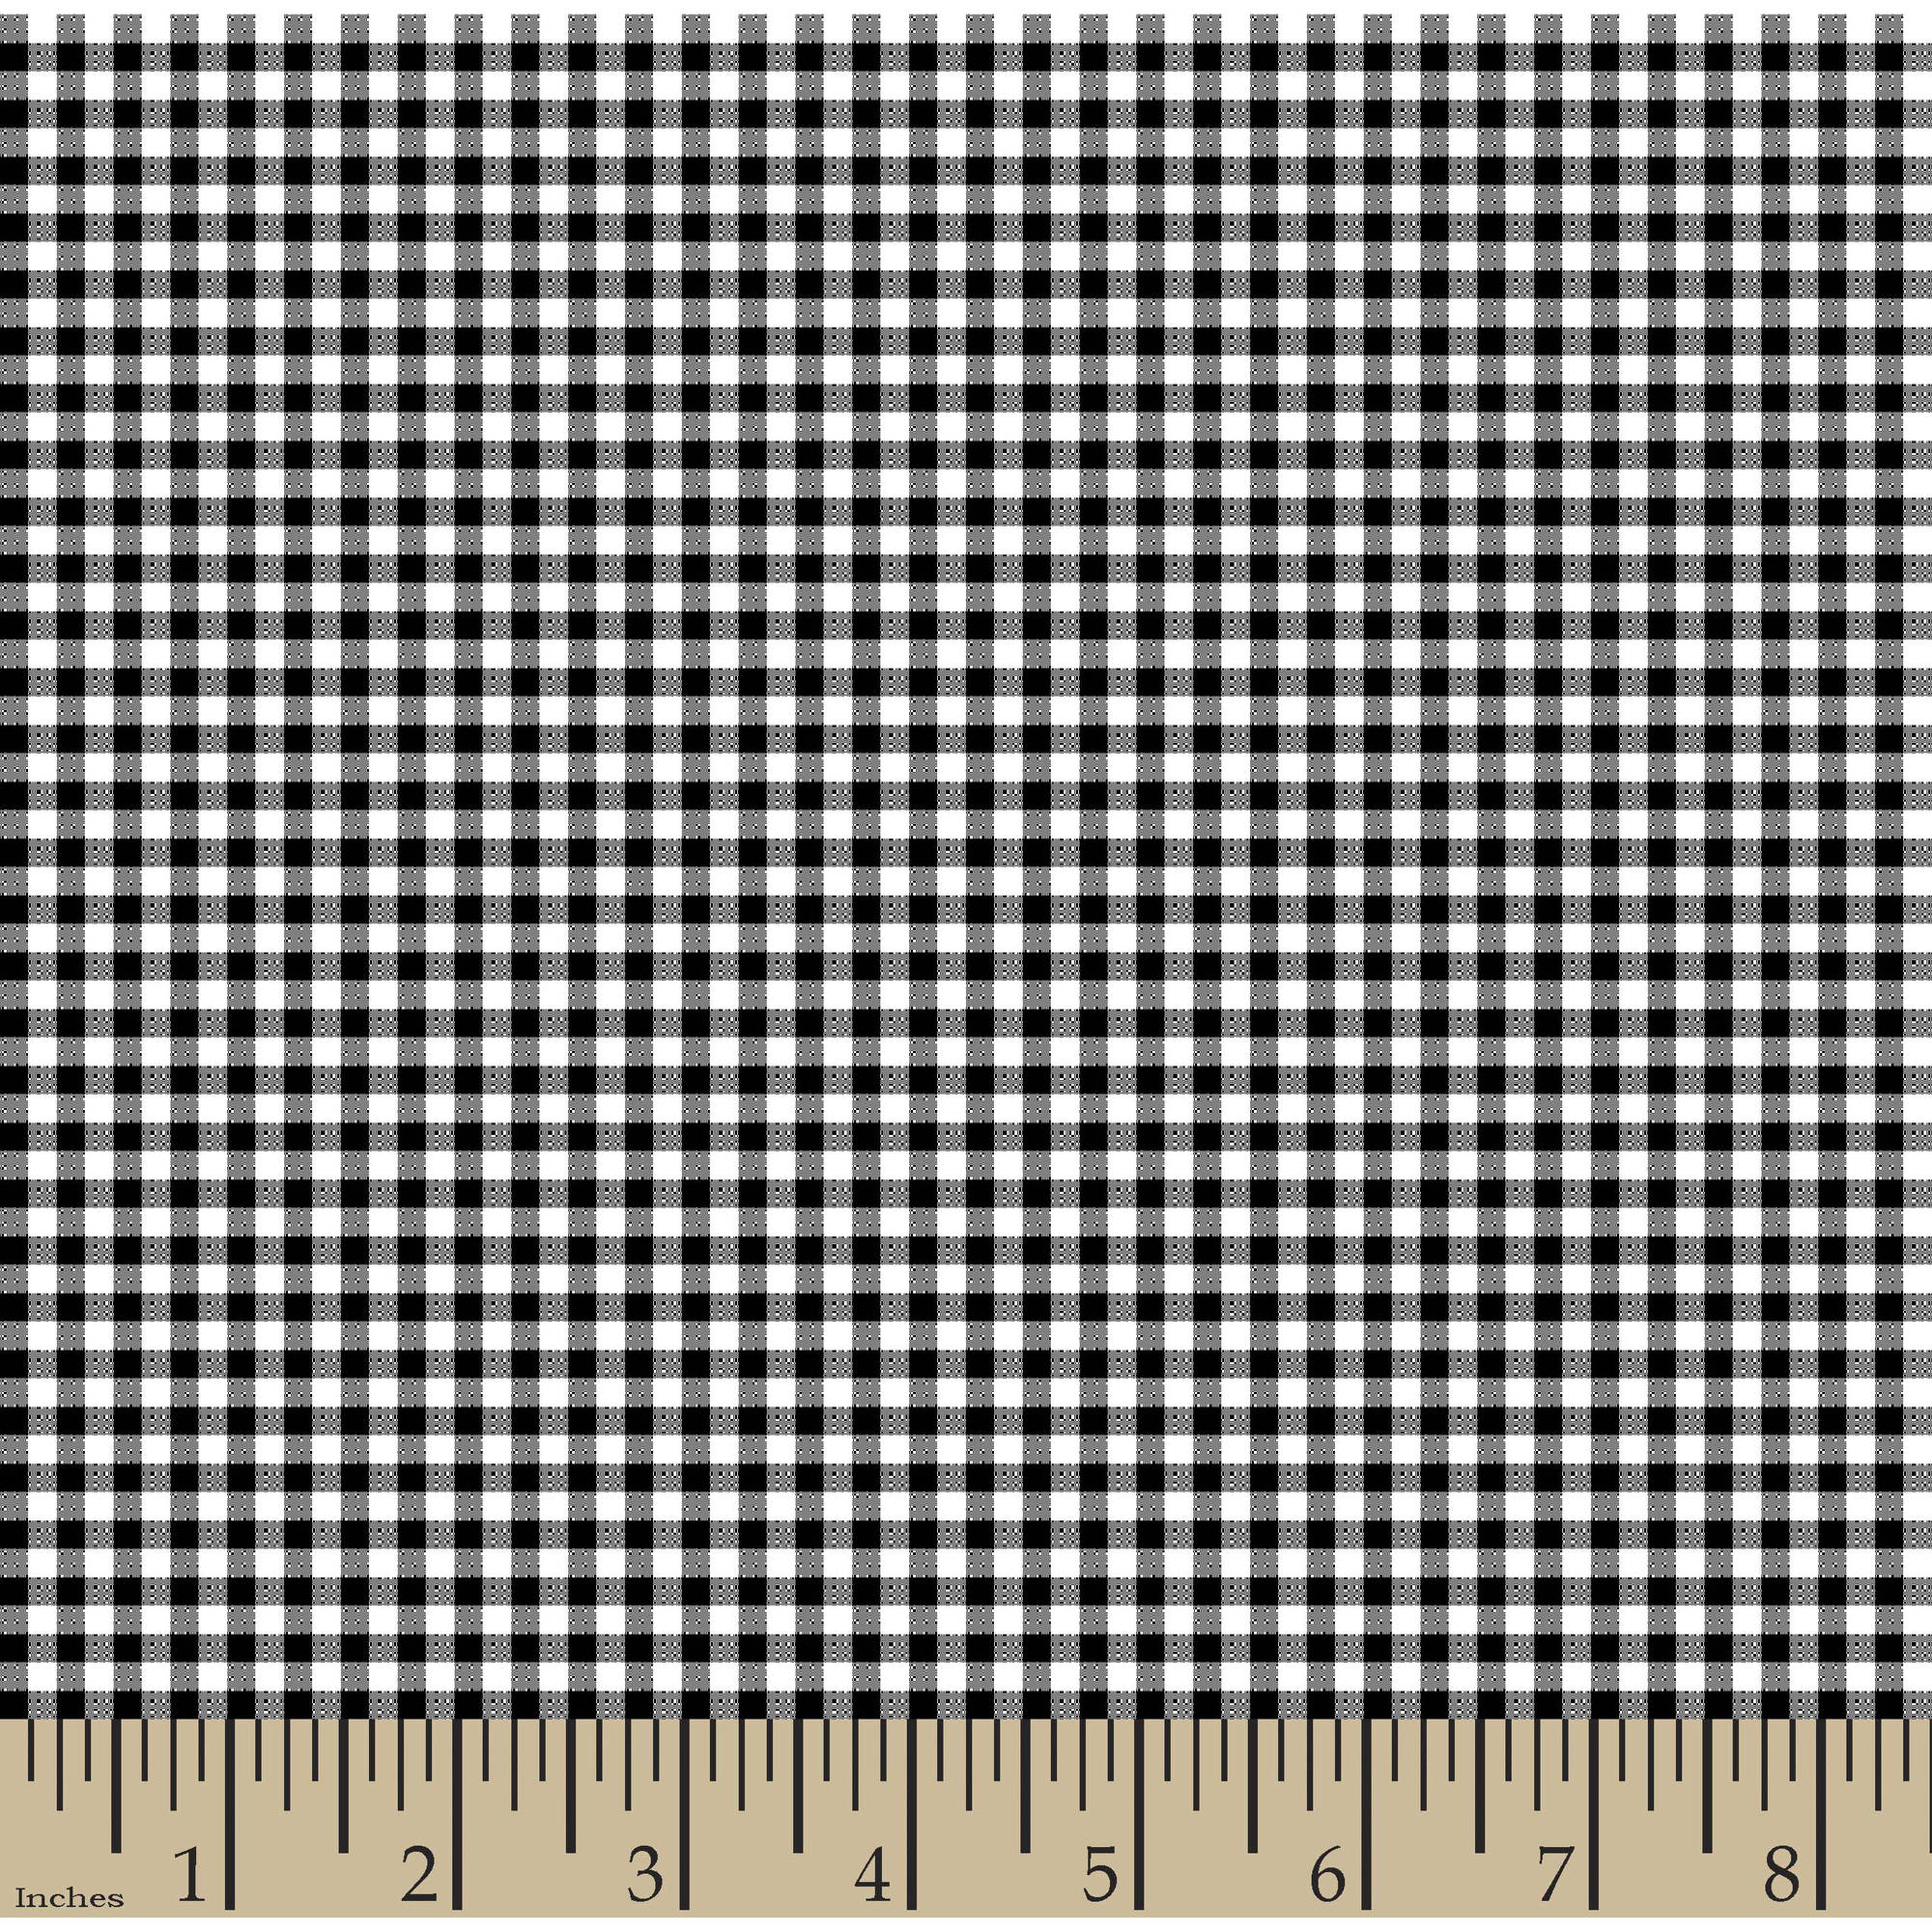 "Woven Gingham Check 1/8"" 65/35 Poly/Cotton Fabric by the Yard, Black, 44/45"" Width"